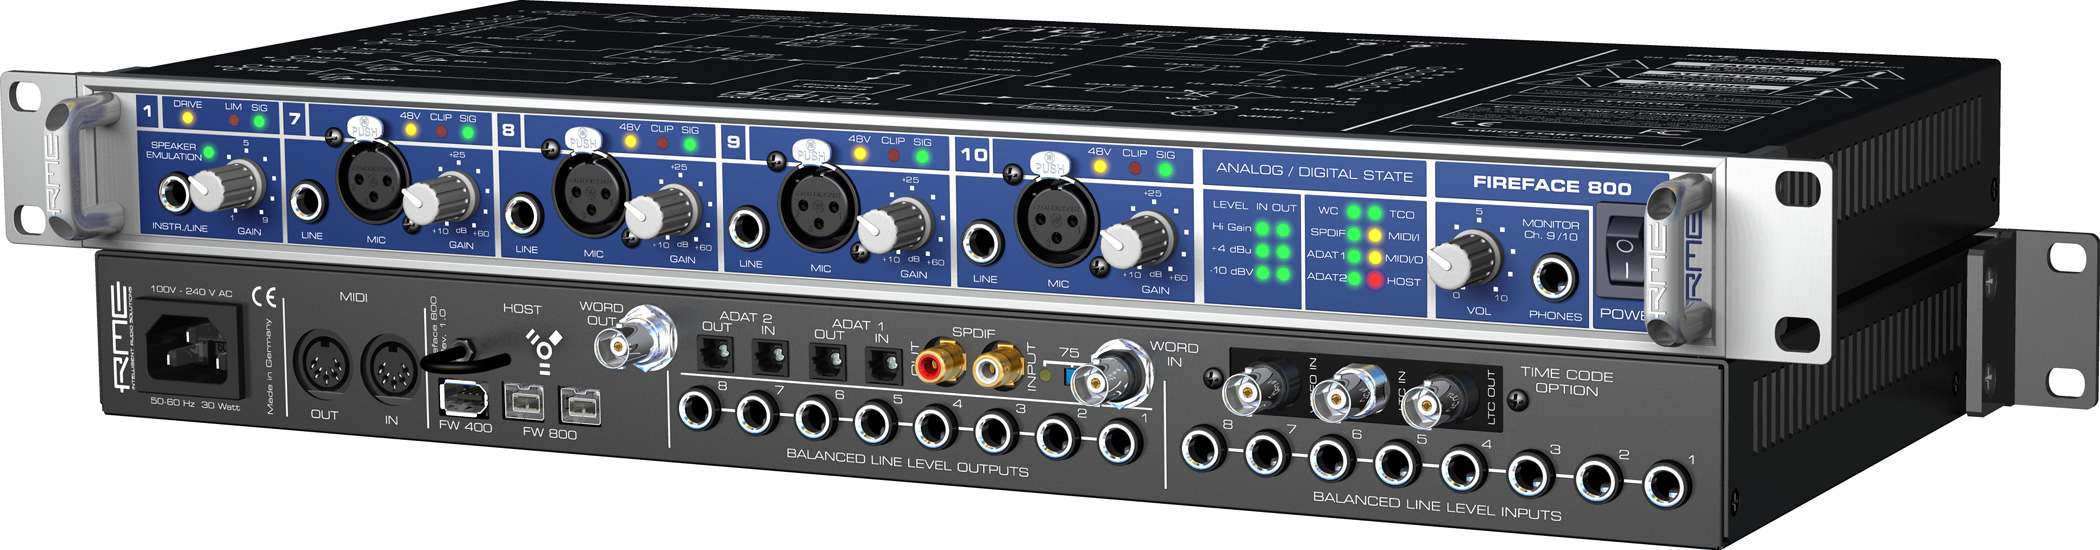 RME: Fireface 800